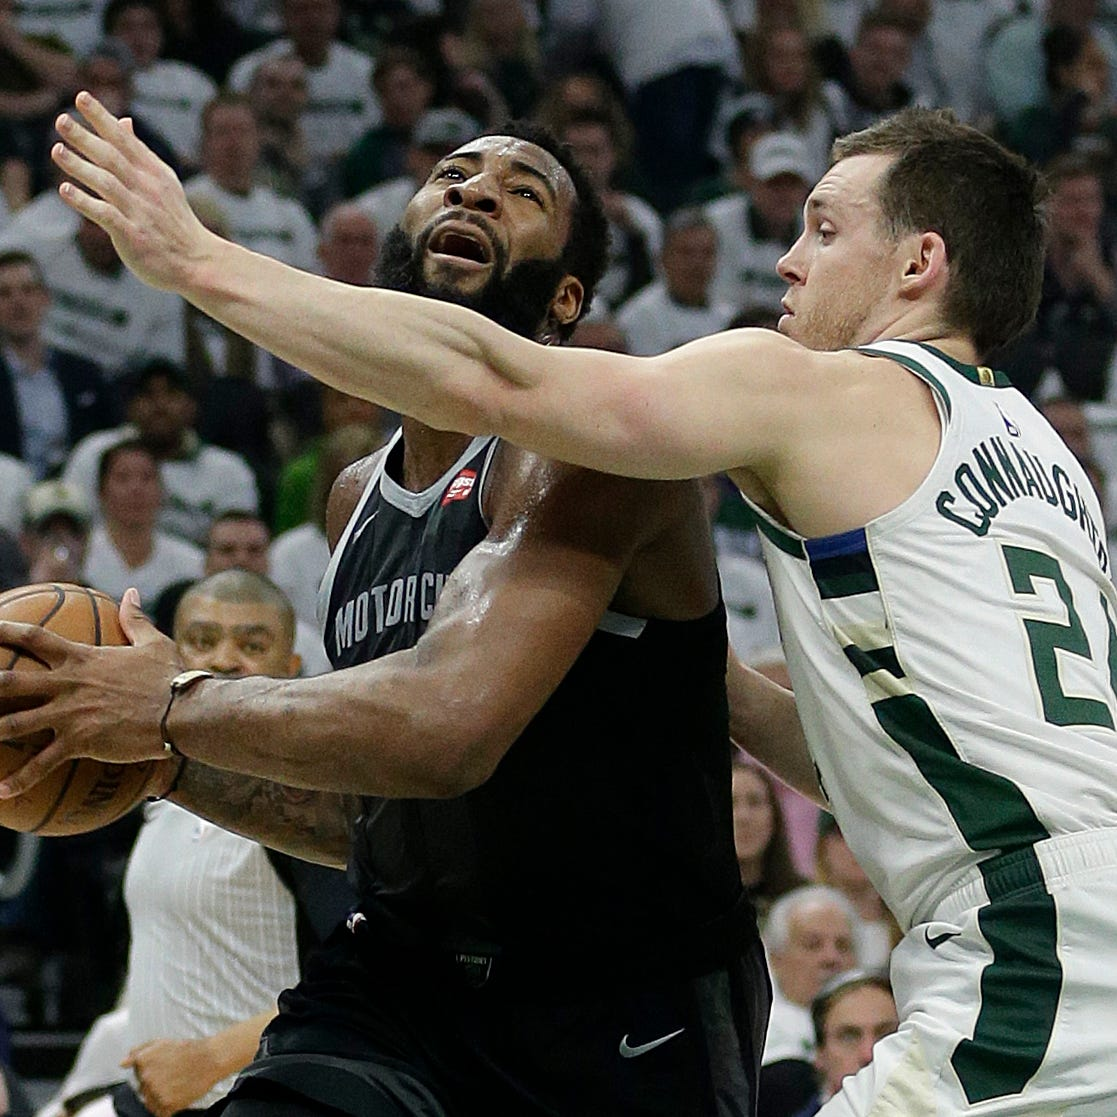 Game 1 live updates: Rout continues for Pistons in Milwaukee